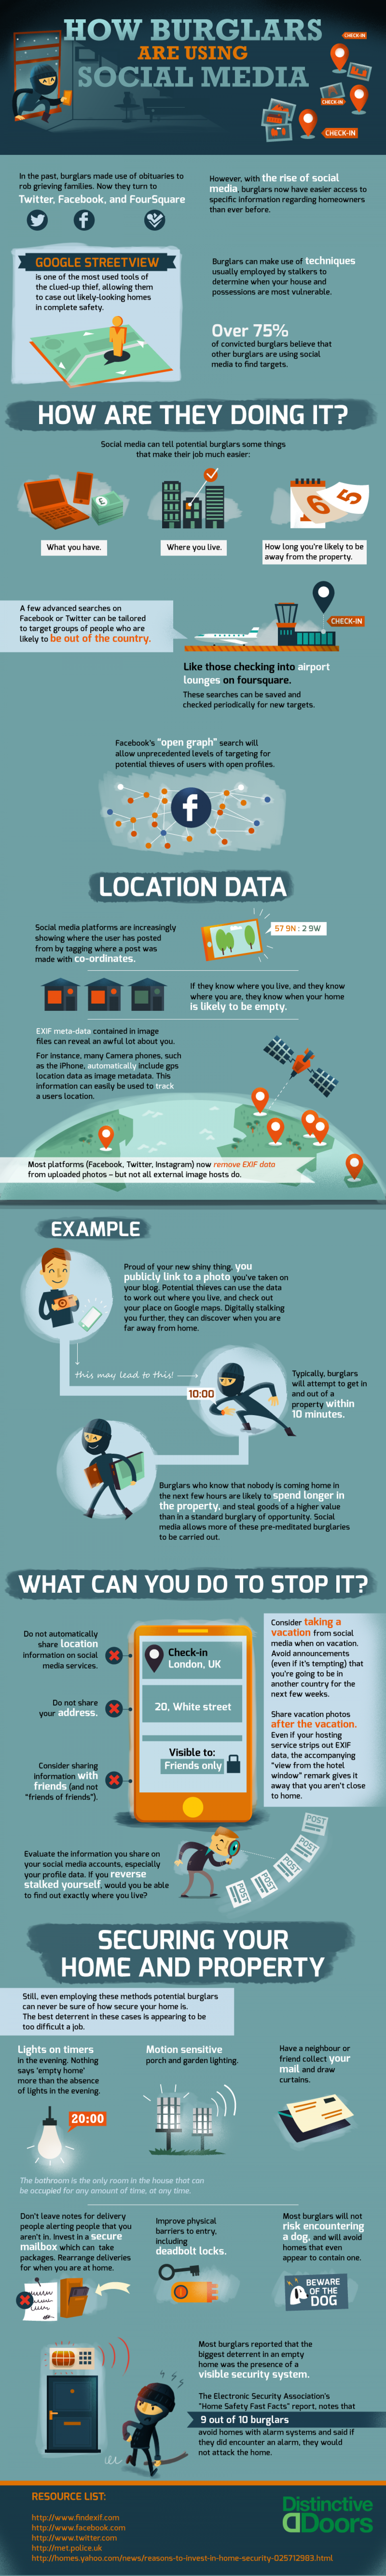 How Burglars Are Using Social Media Infographic